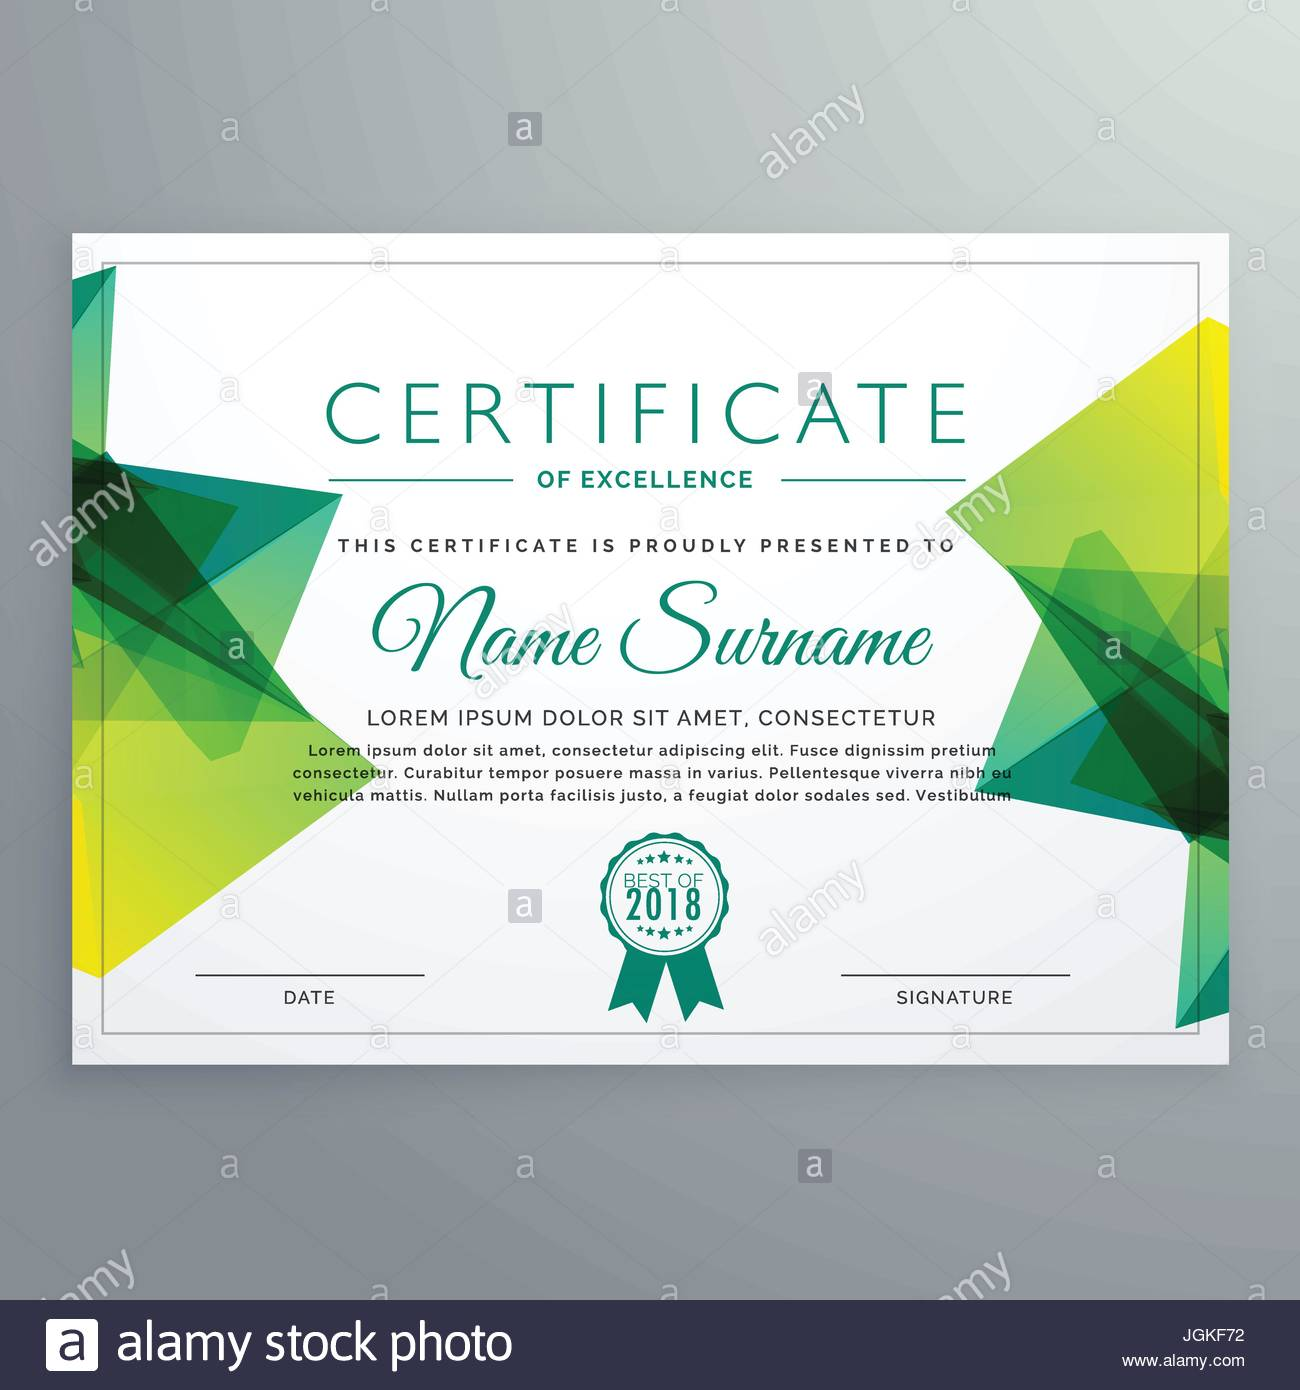 Certificate Vector Green Stockfotos & Certificate Vector Green ...